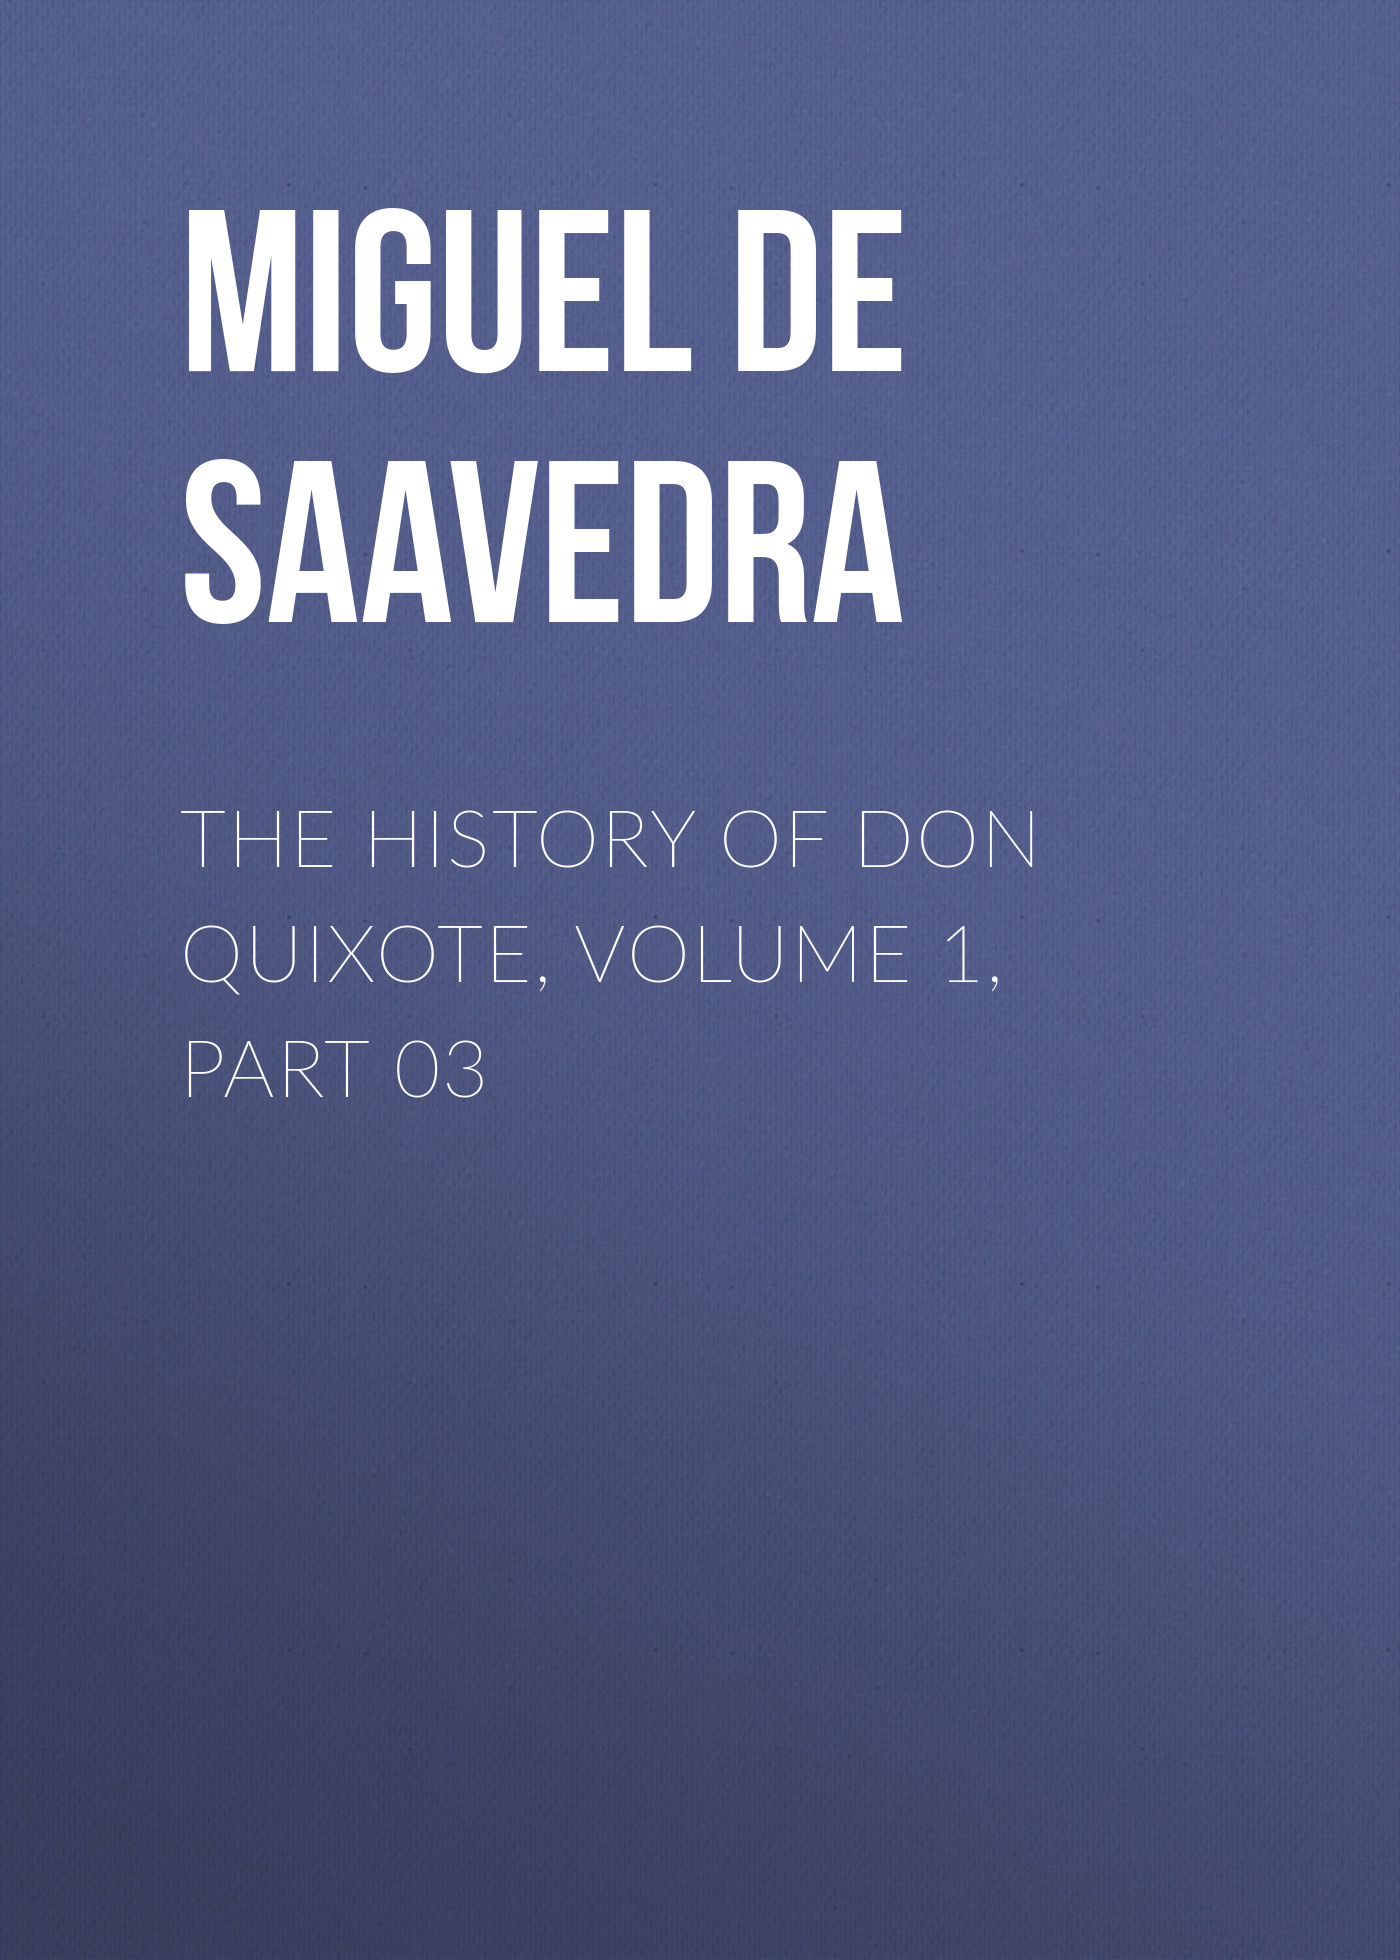 Мигель де Сервантес Сааведра The History of Don Quixote, Volume 1, Part 03 g l shumway history of western nebraska and its people volume 3 part 1